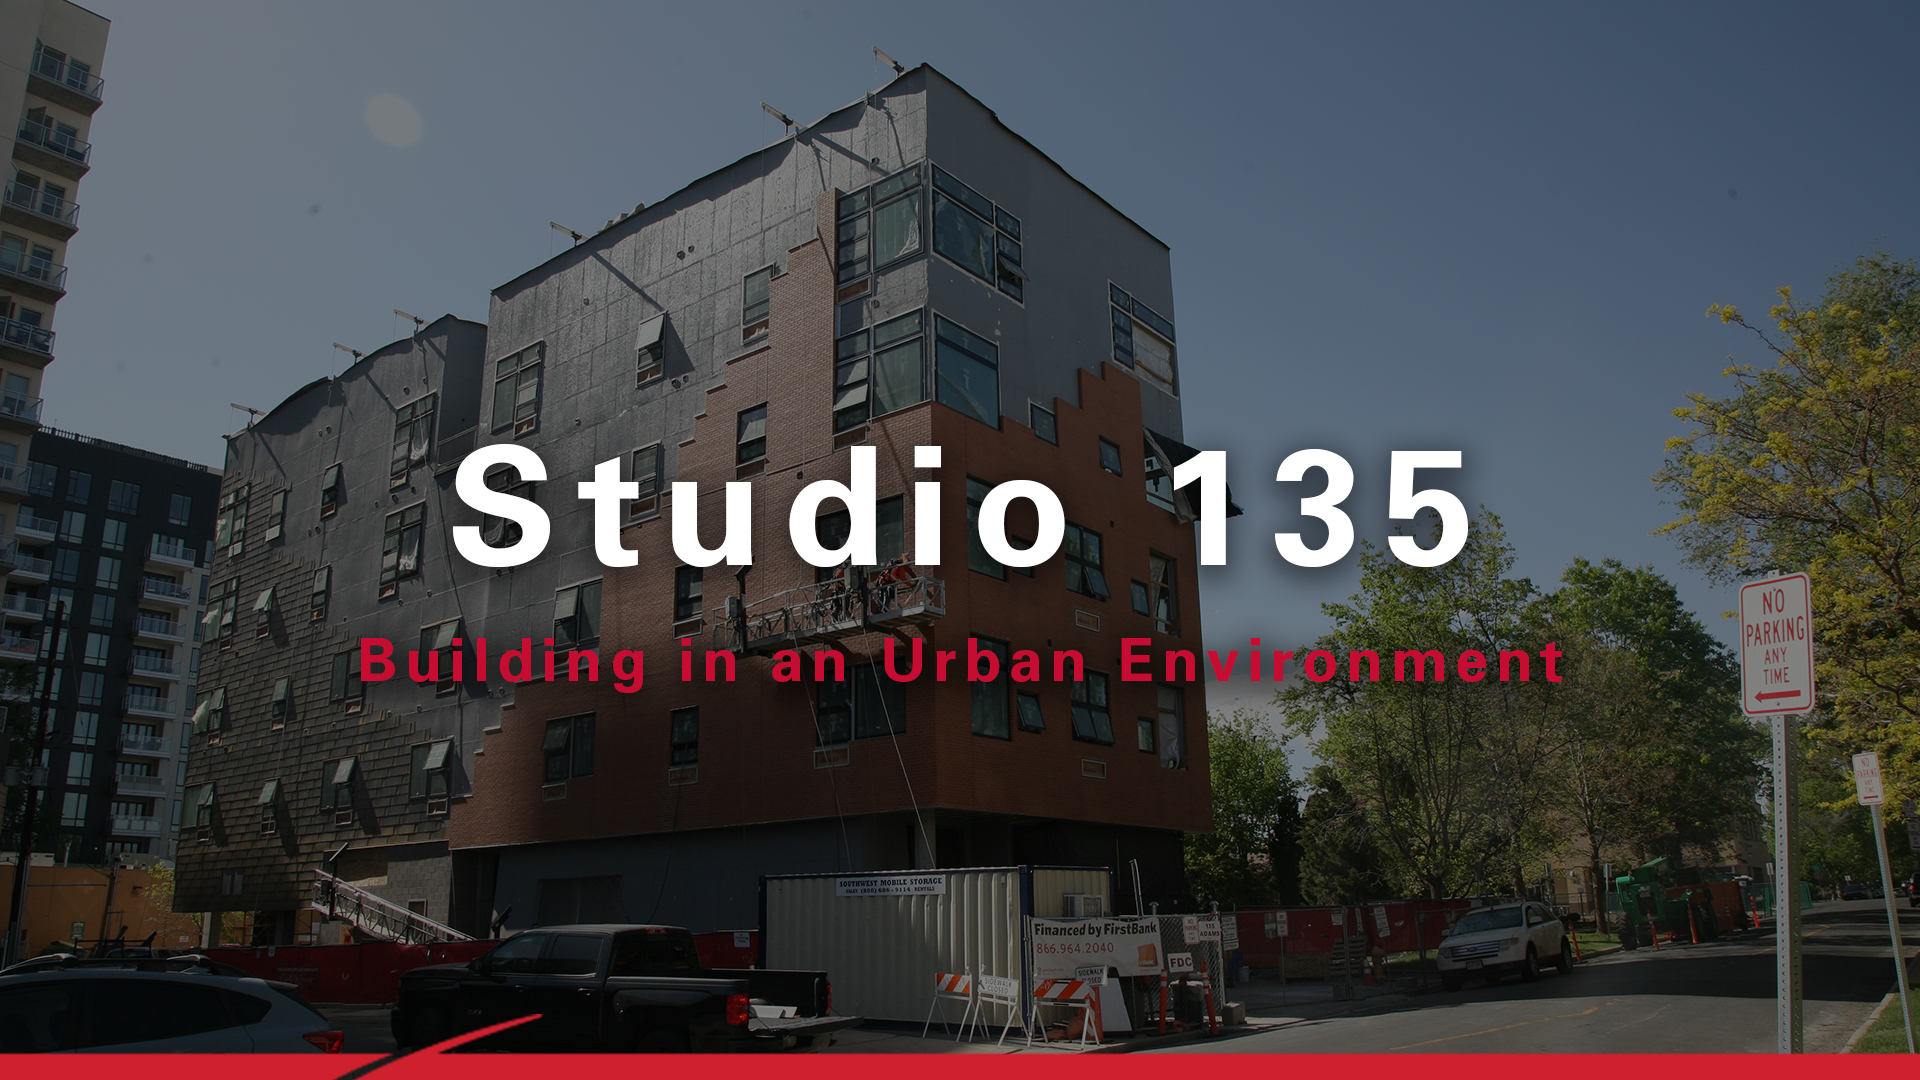 Building in an Urban Environment: Studio 135